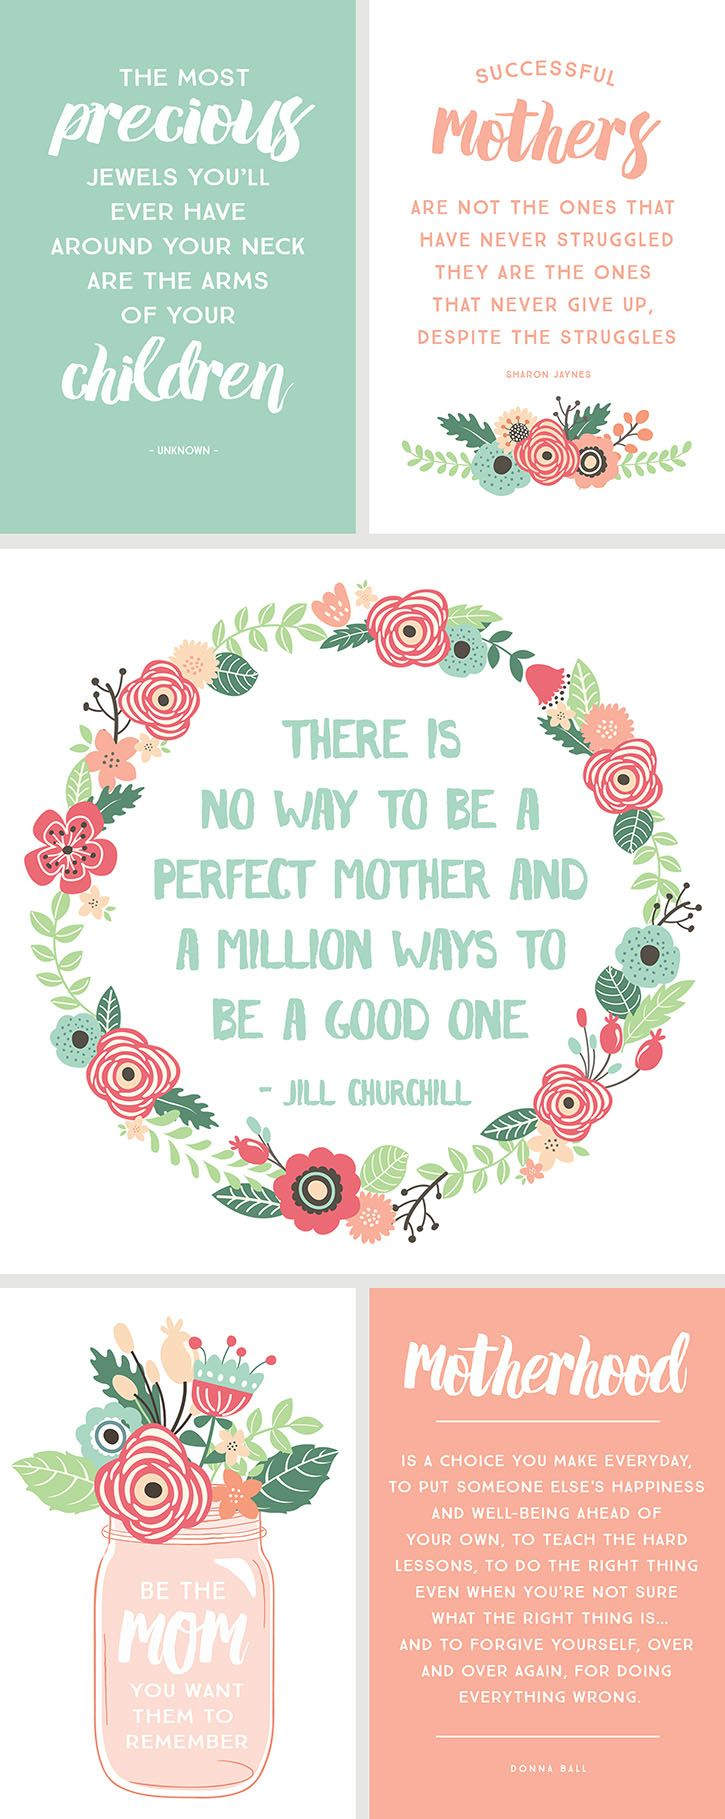 Inspirational Quotes for Motherus Day mothers day Pinterest